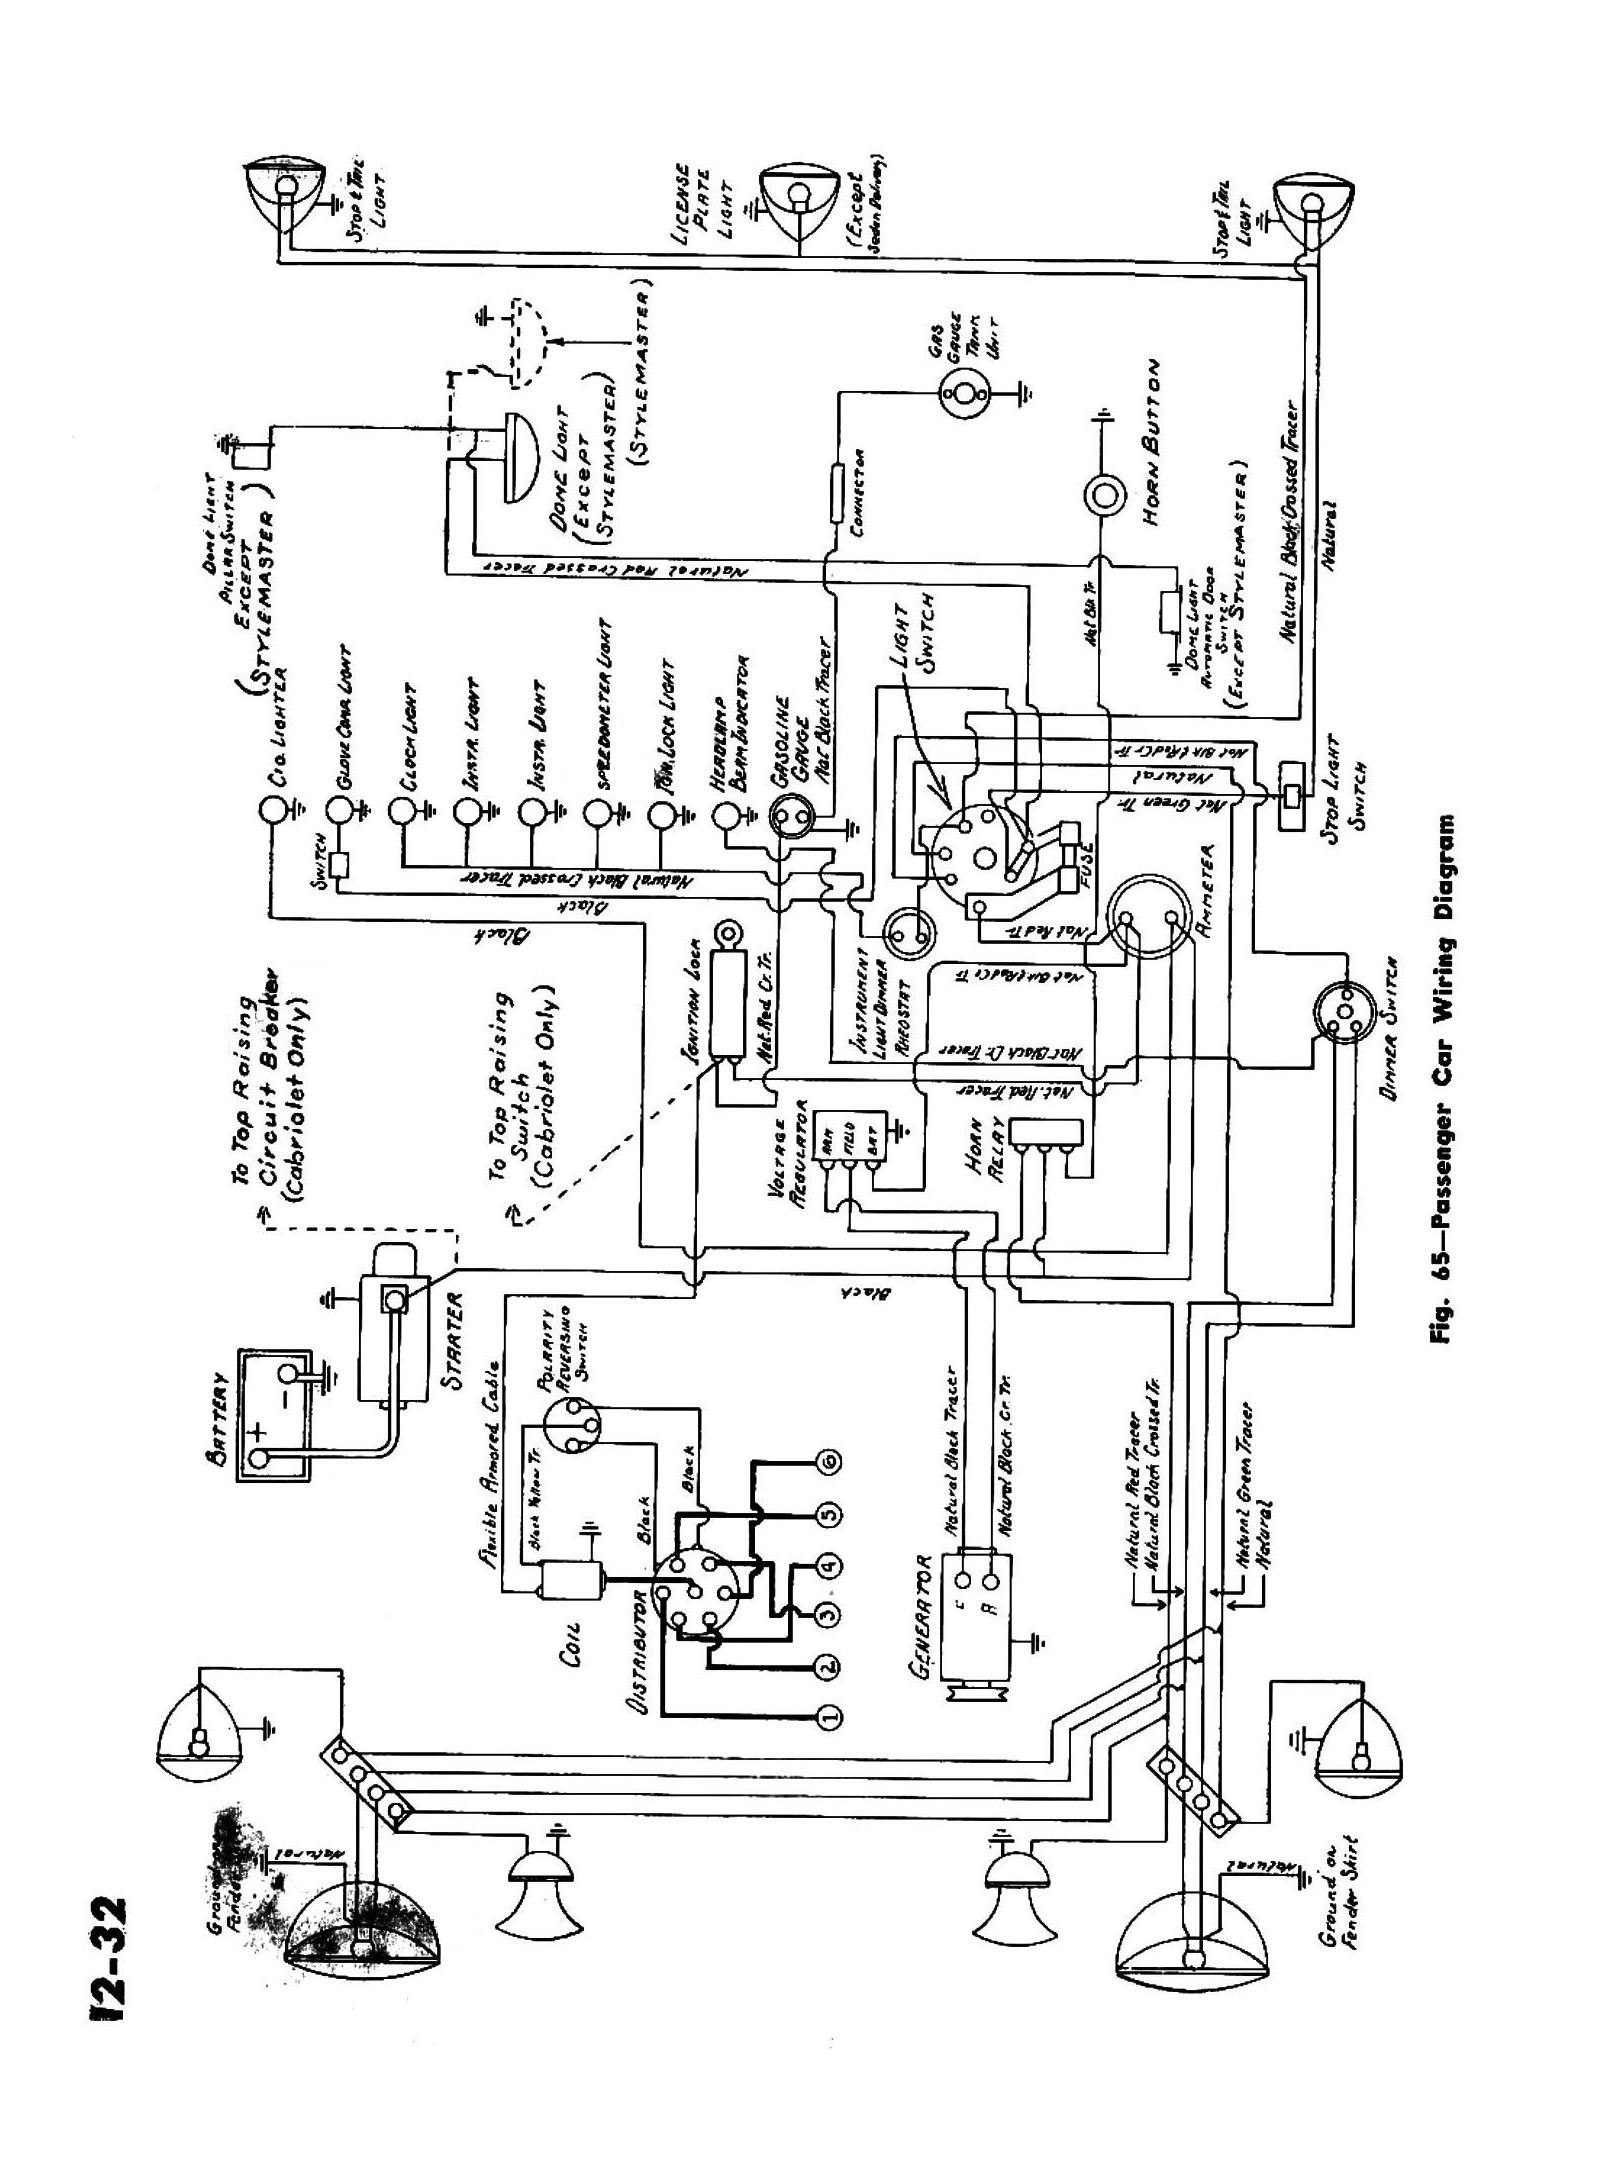 45car chevy wiring diagrams wiring schematics for cars at mifinder.co